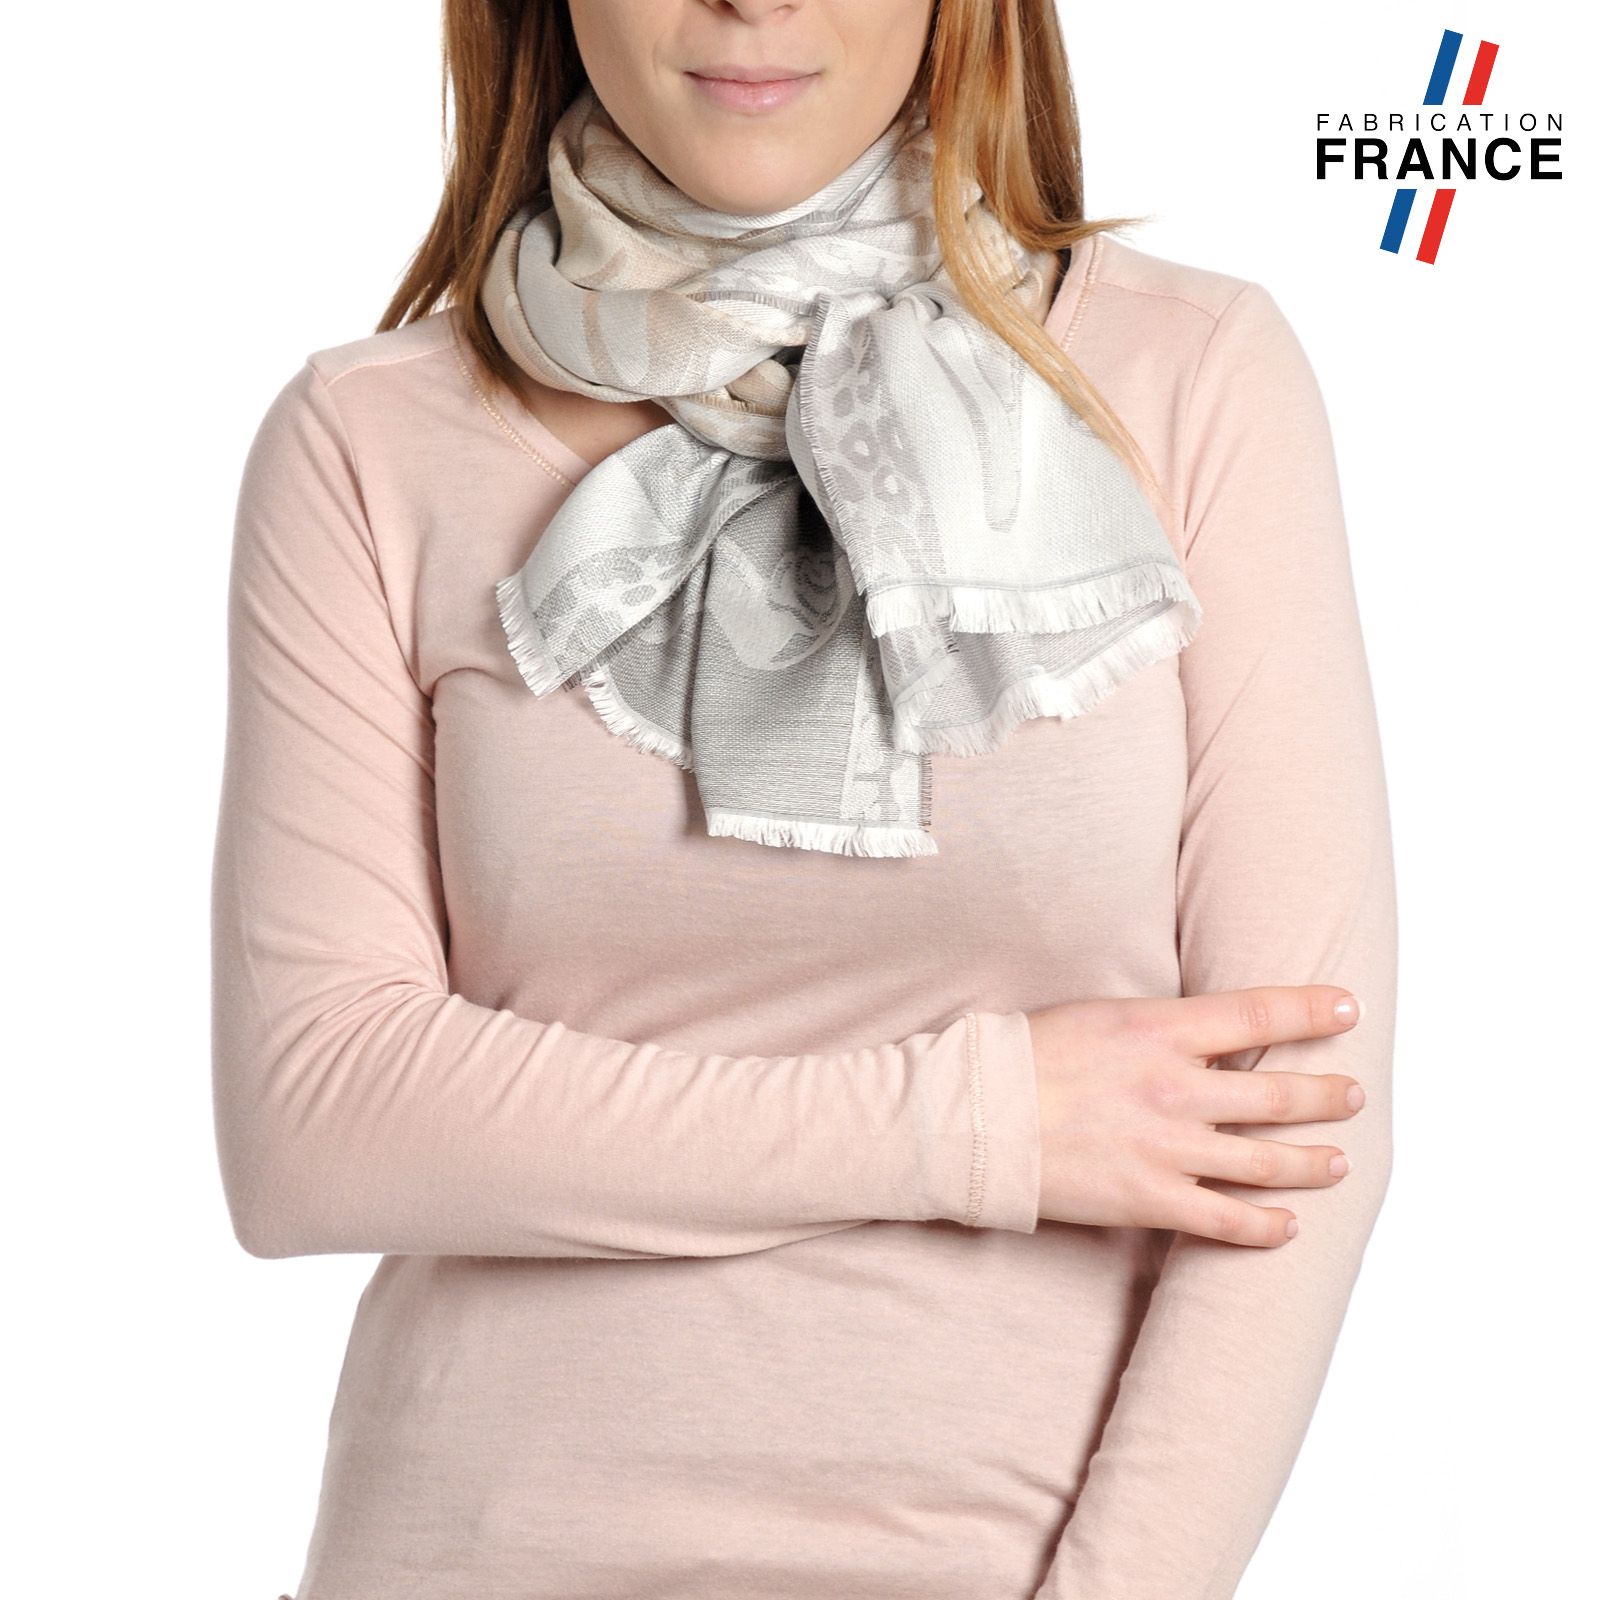 AT-04197-VF16-P-LB_FR-echarpe-legere-femme-grise-fabrication-france